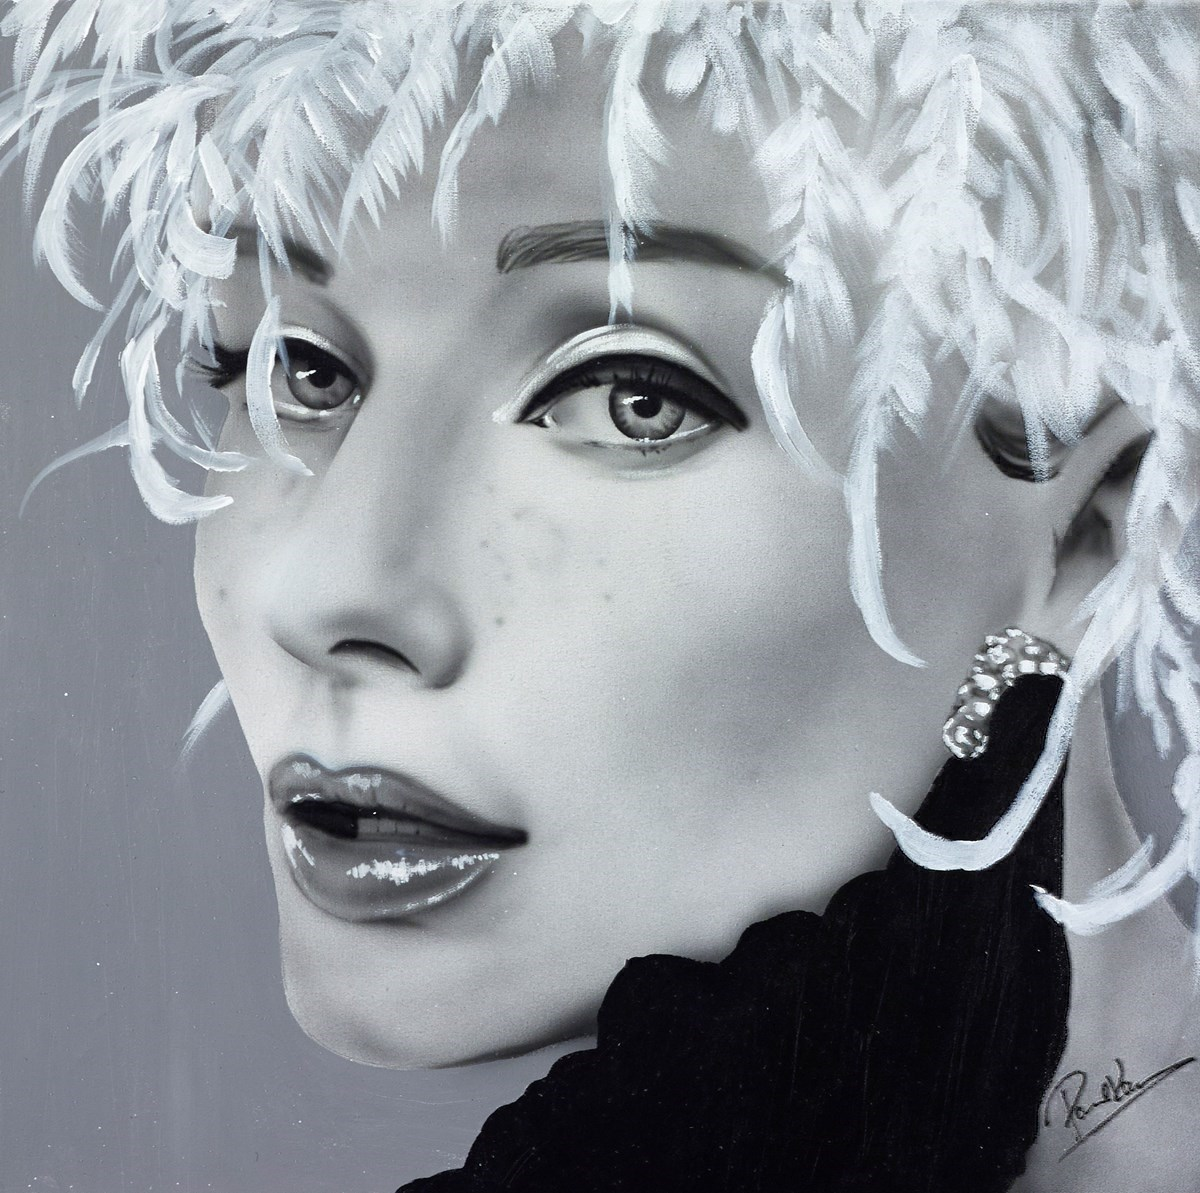 Sophia Loren by Paul Karslake - Orig Monochrome Airbrush W/Diamond Dust on Canvas sized 25x25 inches. Available from Whitewall Galleries